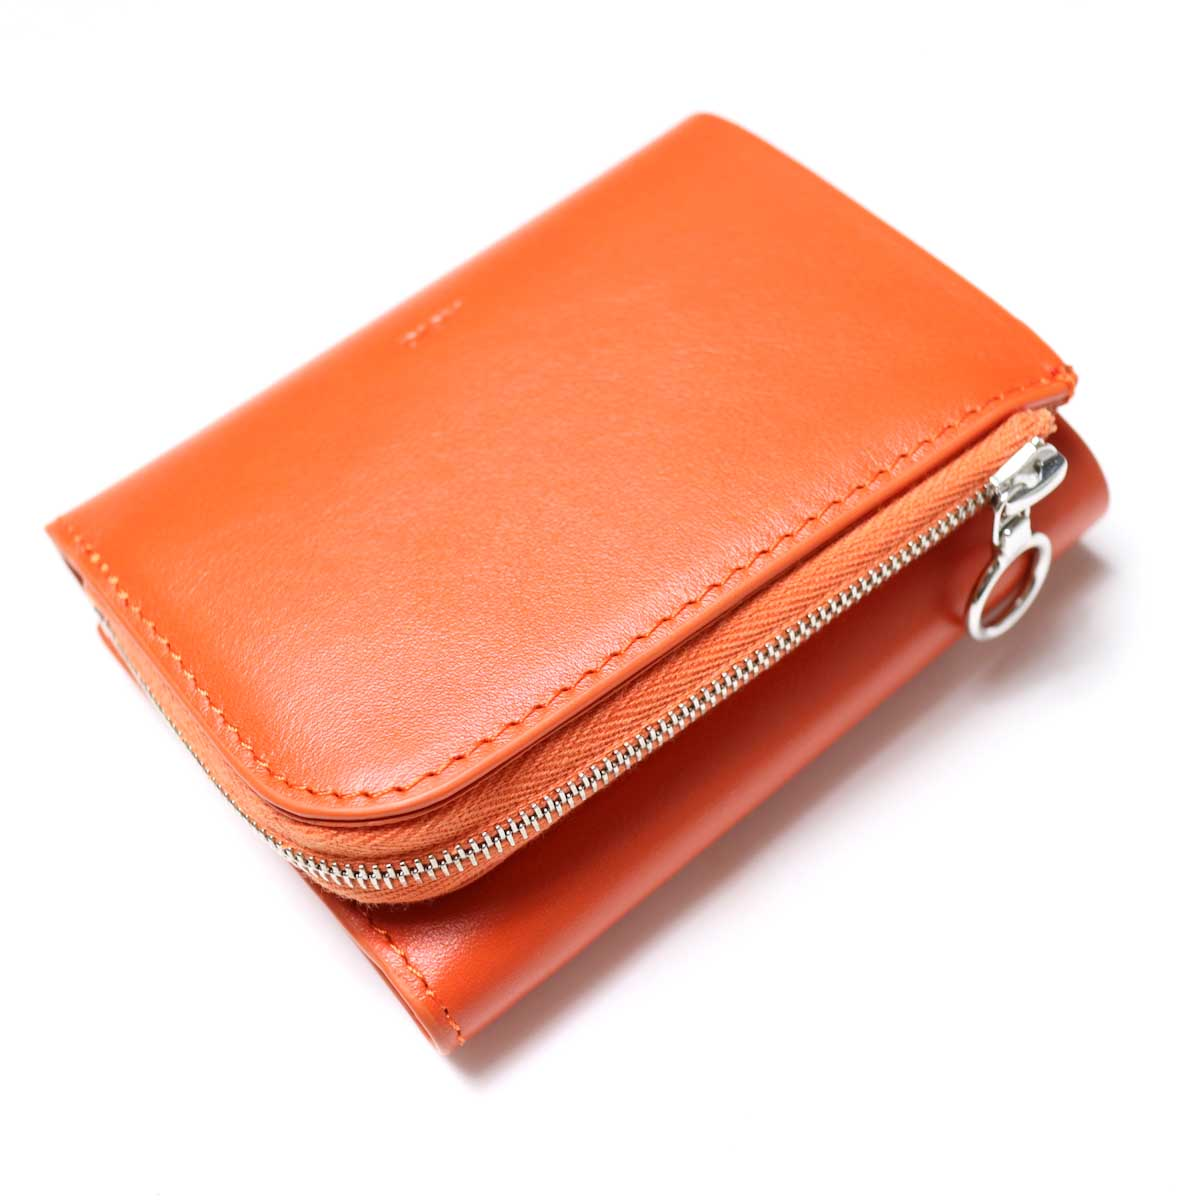 Aeta / FG LEATHER WALLET typeA コイン収納部分